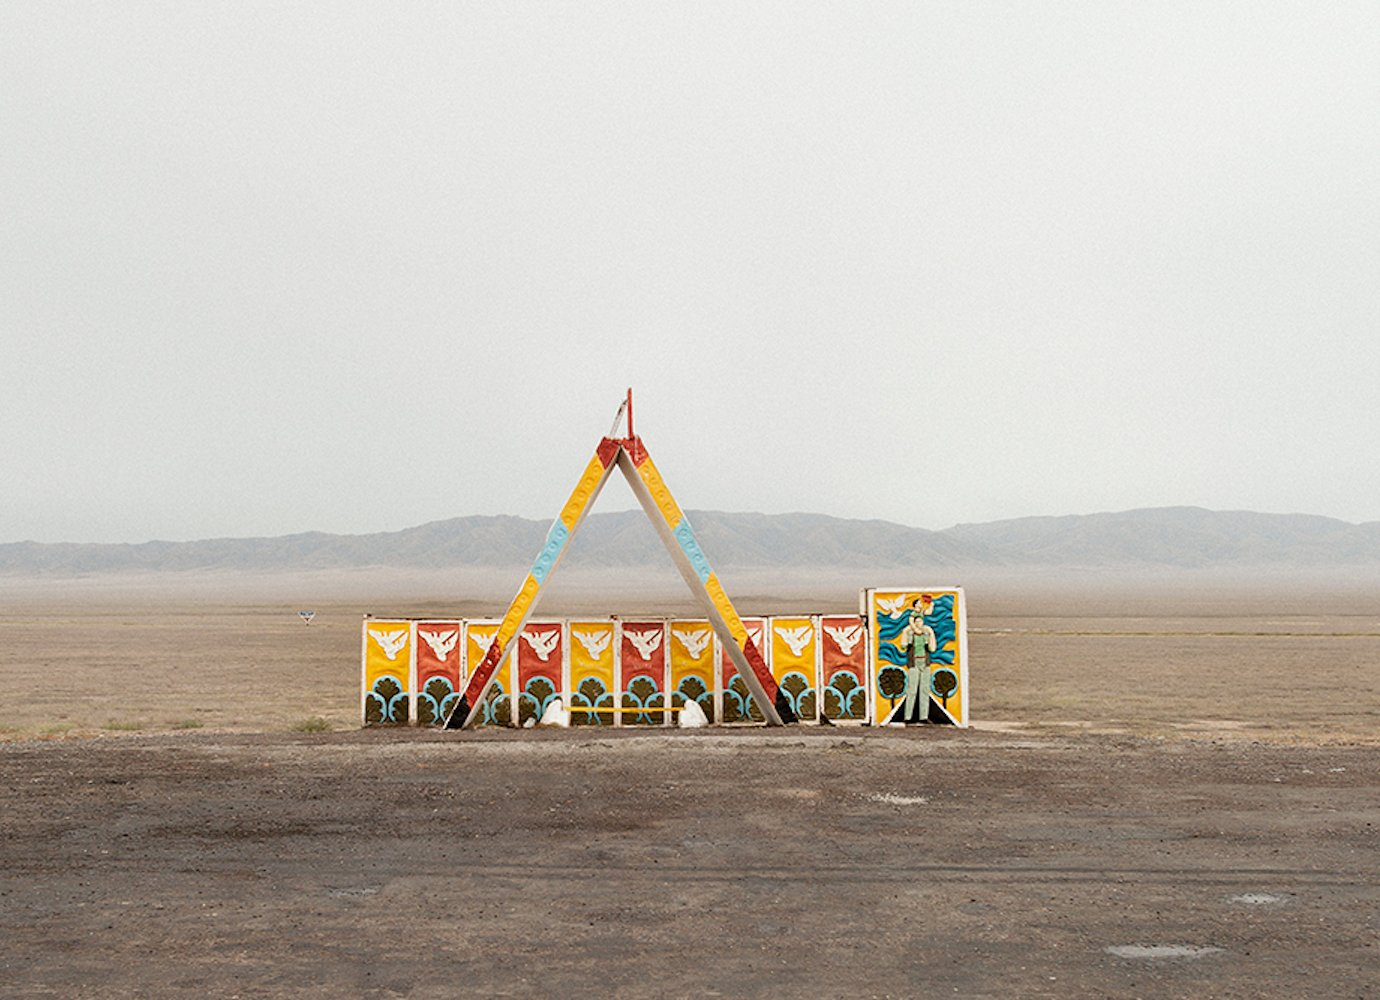 Lose yourself in the fascinating world of Soviet bus stops with @herwigphoto